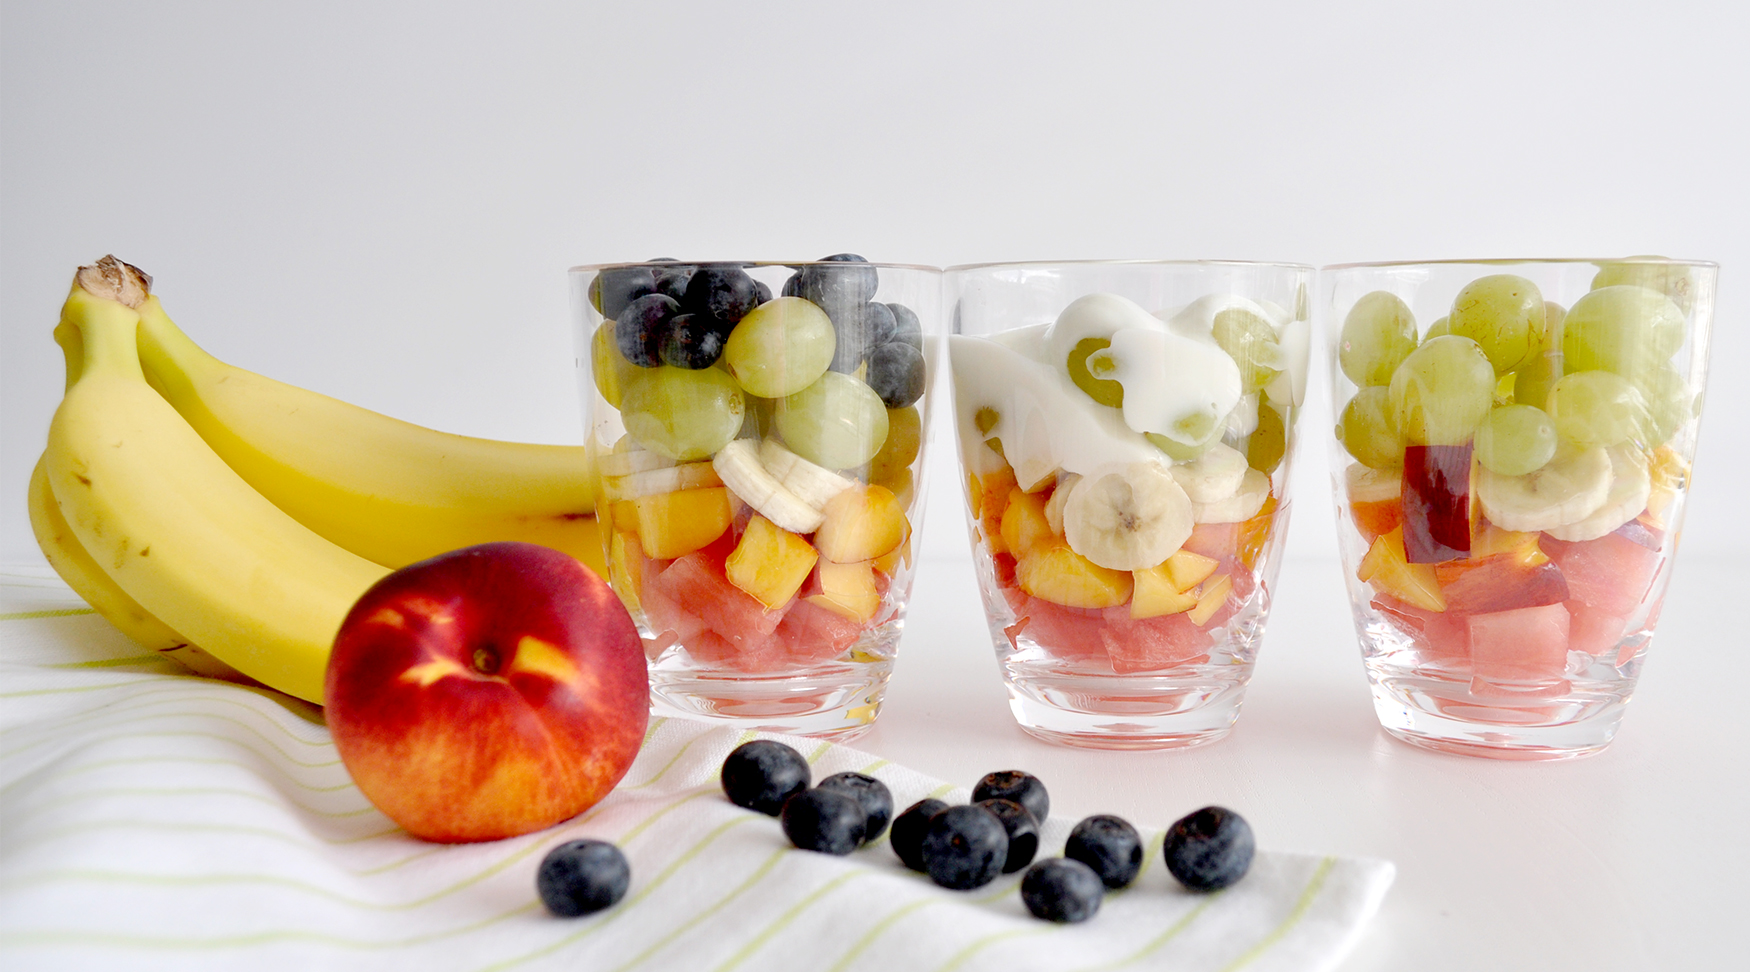 Get the kids in the kitchen making healthy snacks, fruit salad is easy to prepare and a great way to help them learn about preparing food in the kitchen.